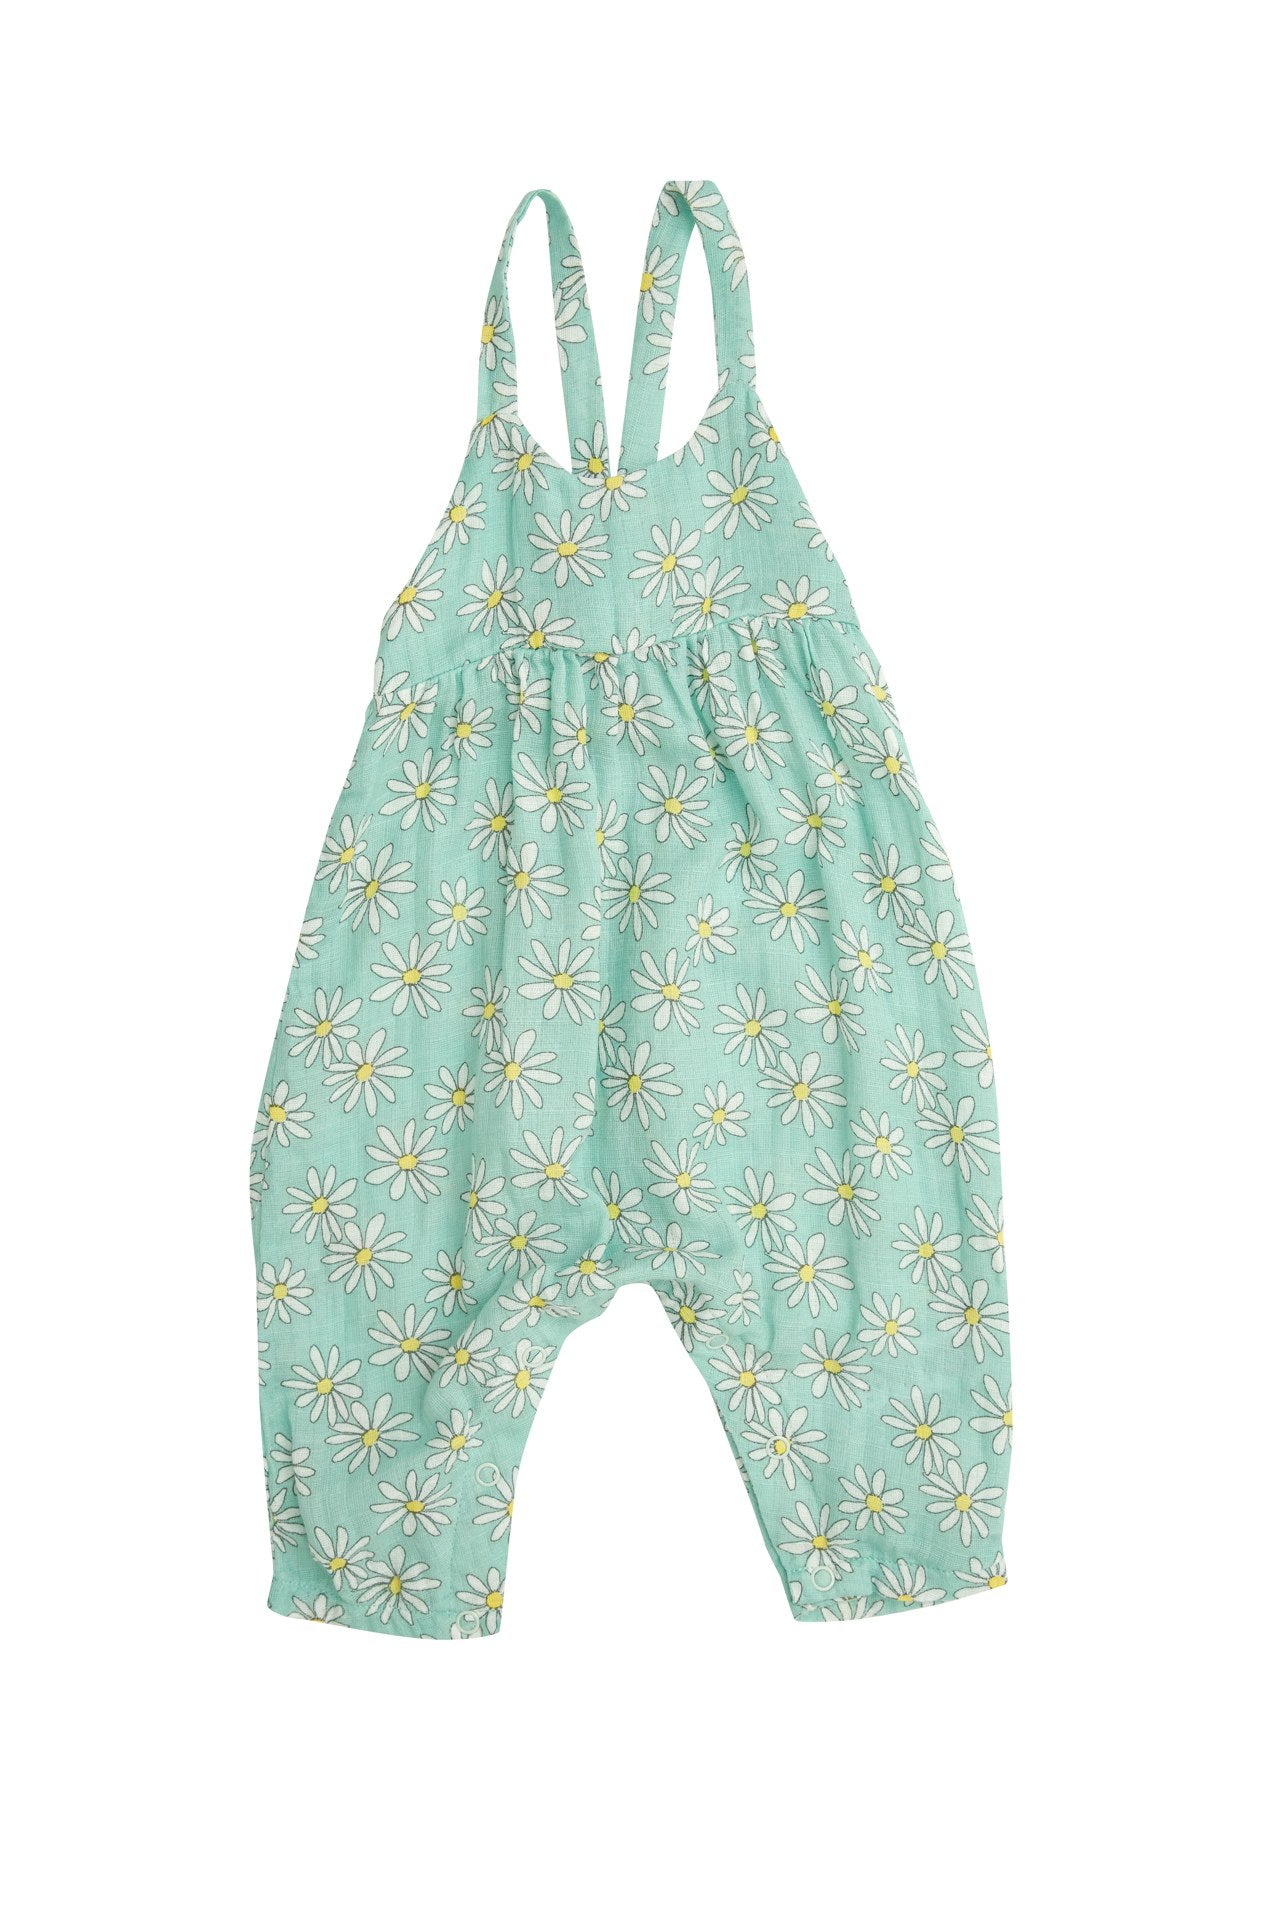 Flower Power Mint Tie Back Romper